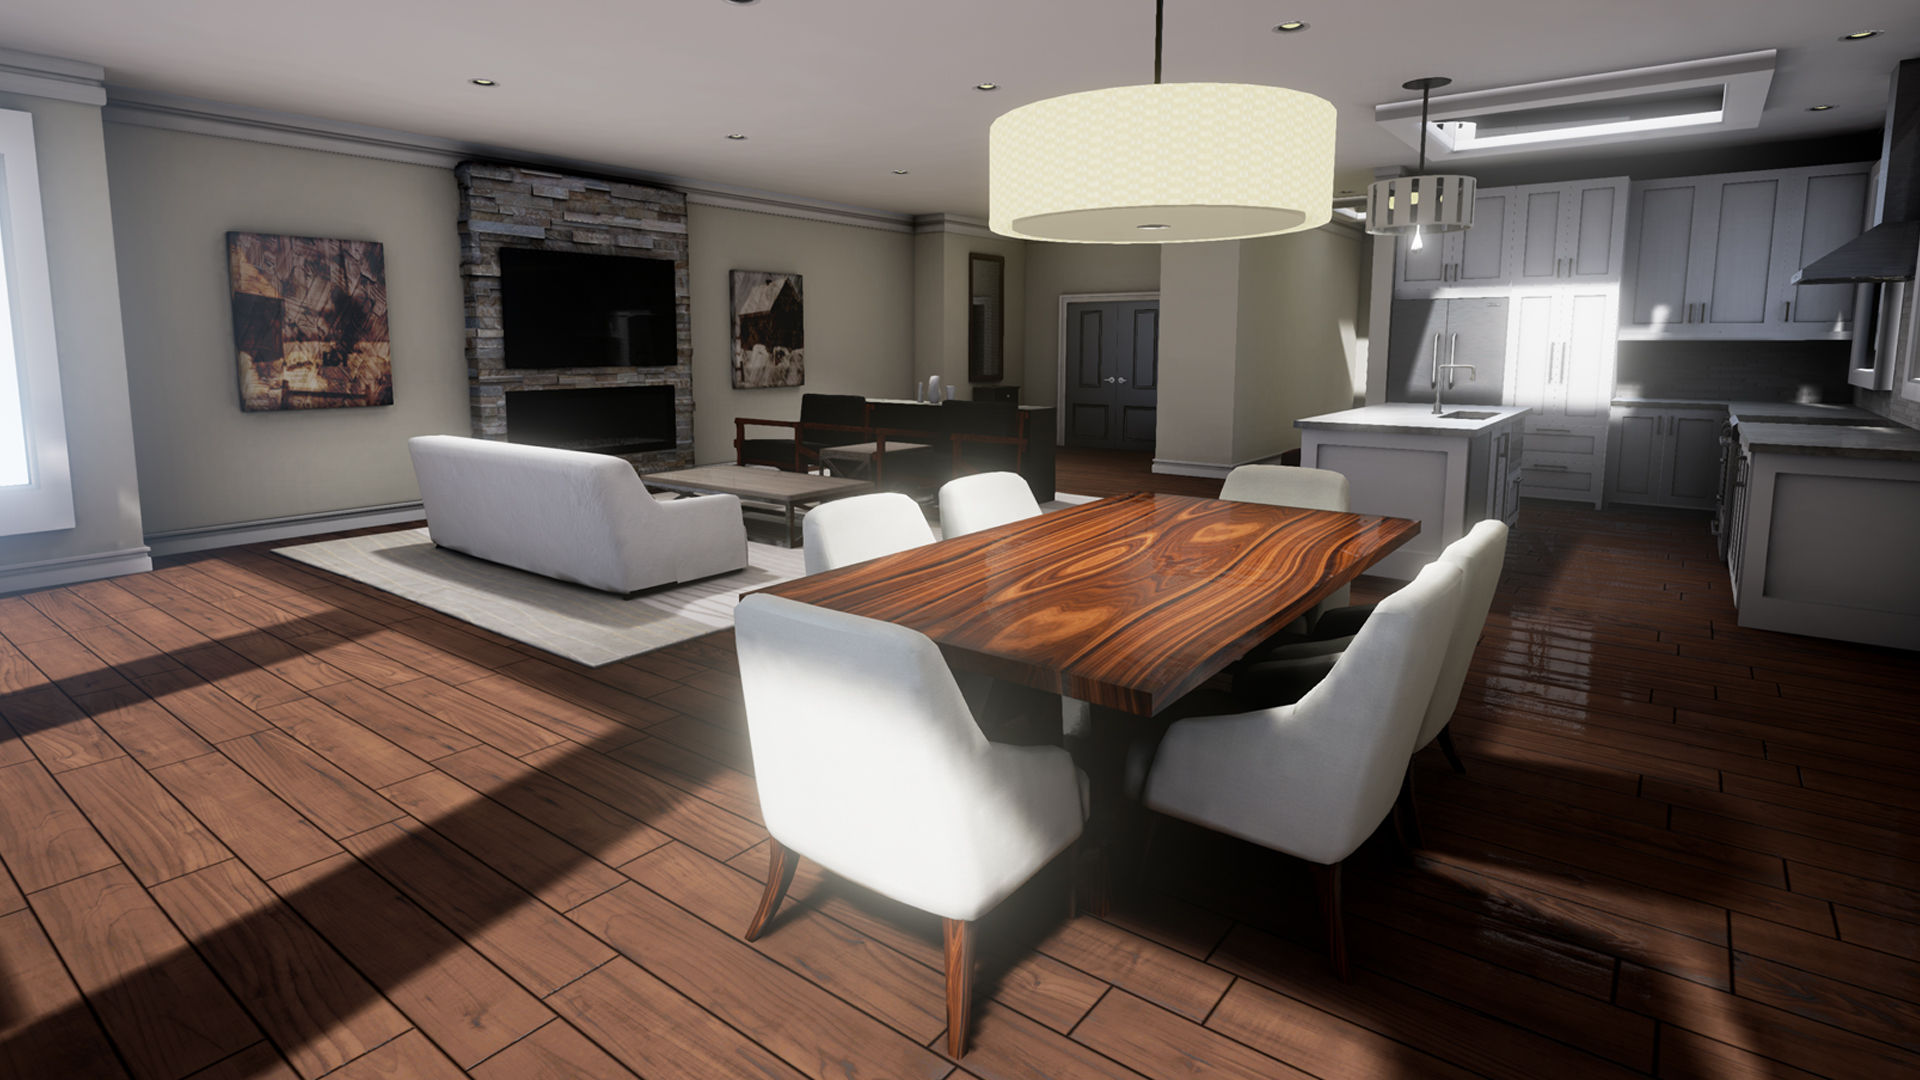 Unreal: Virtual Reality for Architectural and Industrial Visualization free download